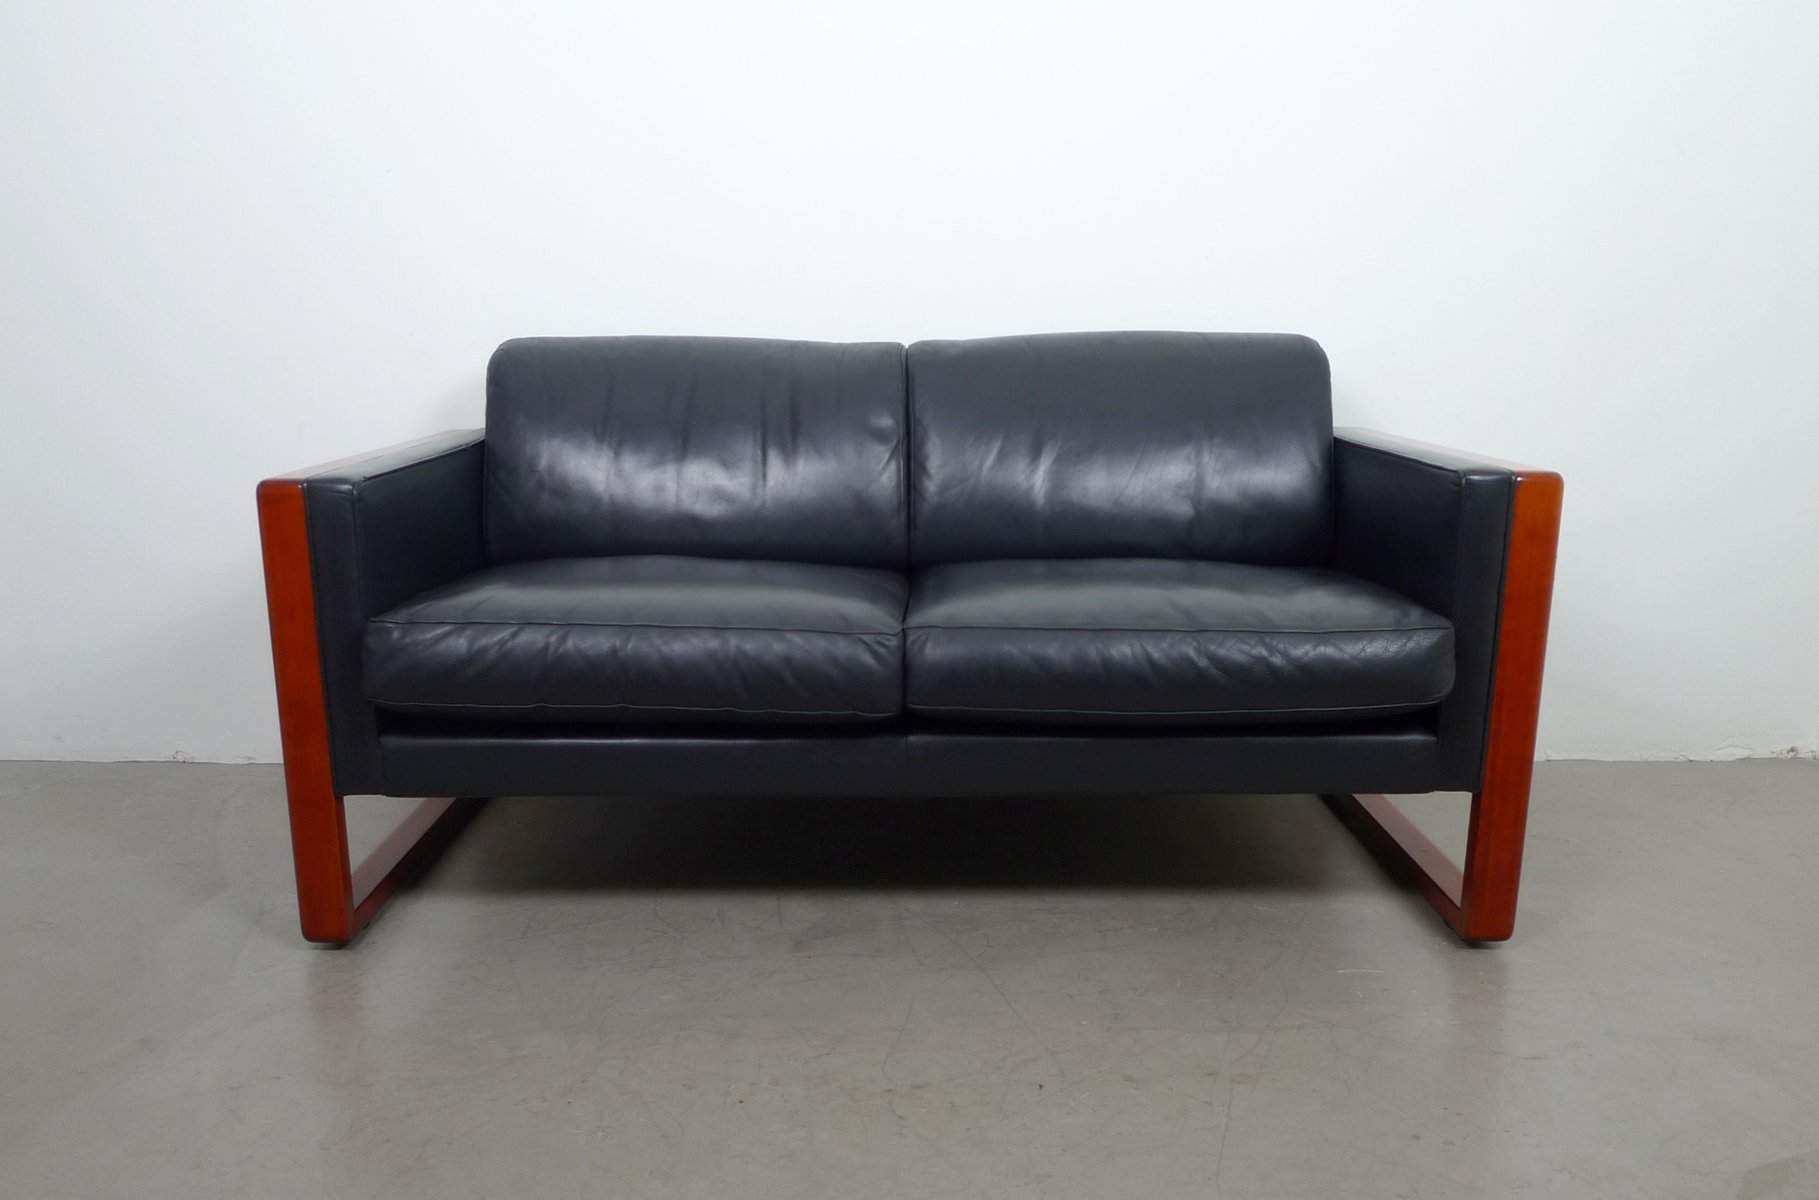 2 seater leather sofa from walter knoll 1960s for sale at pamono 2 seater leather sofa from walter knoll 1960s parisarafo Gallery